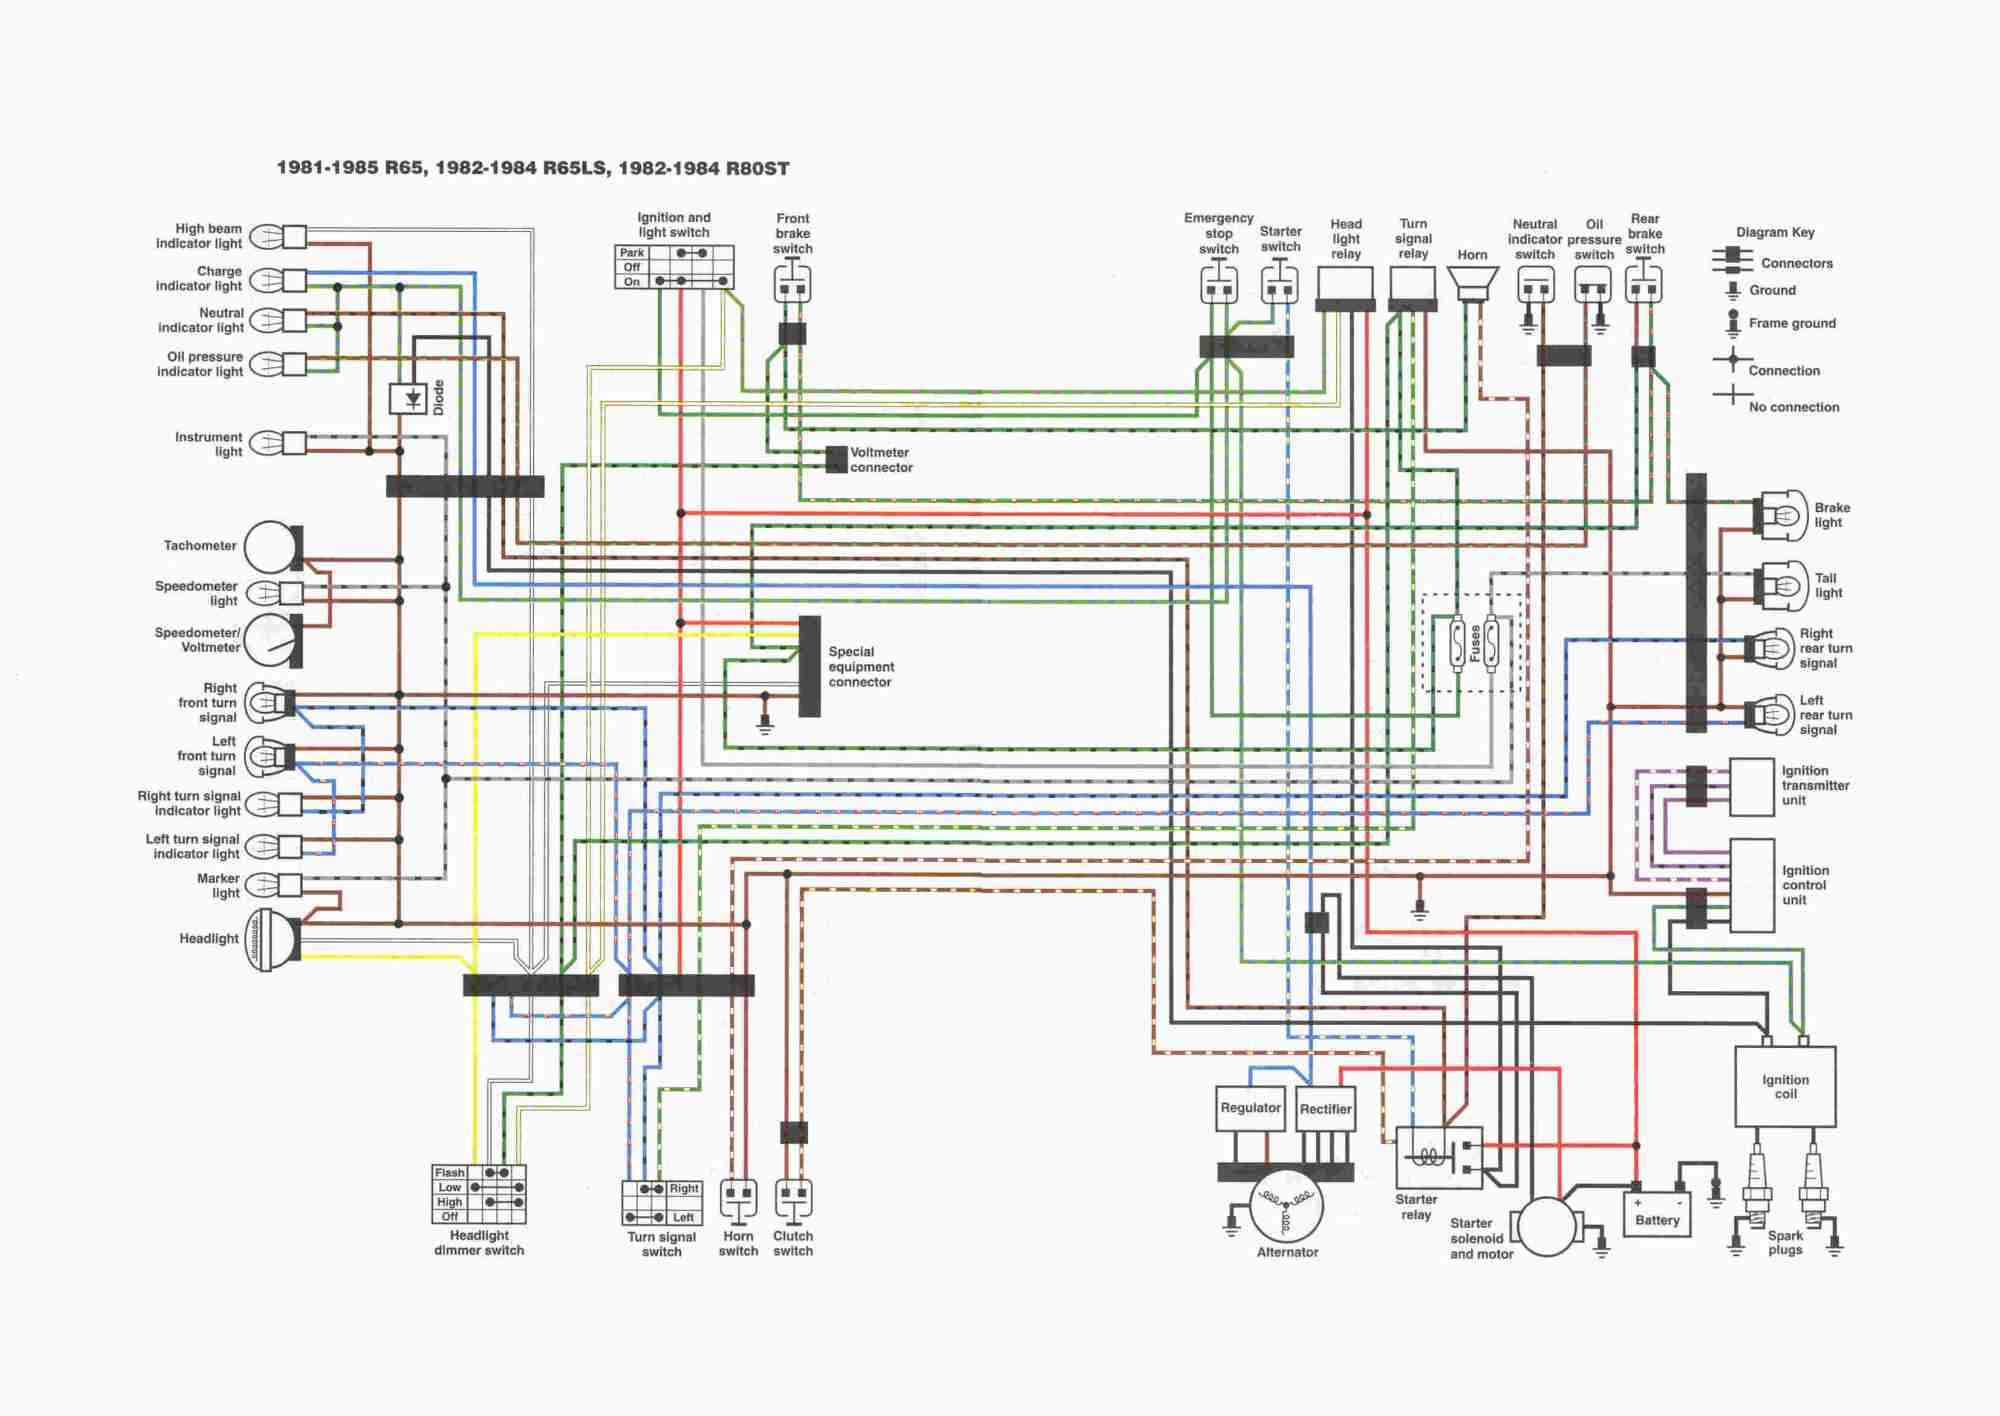 hight resolution of 1984 bmw wiring diagrams wiring diagram filter 1984 bmw 528e wiring diagram 1984 bmw wiring diagrams